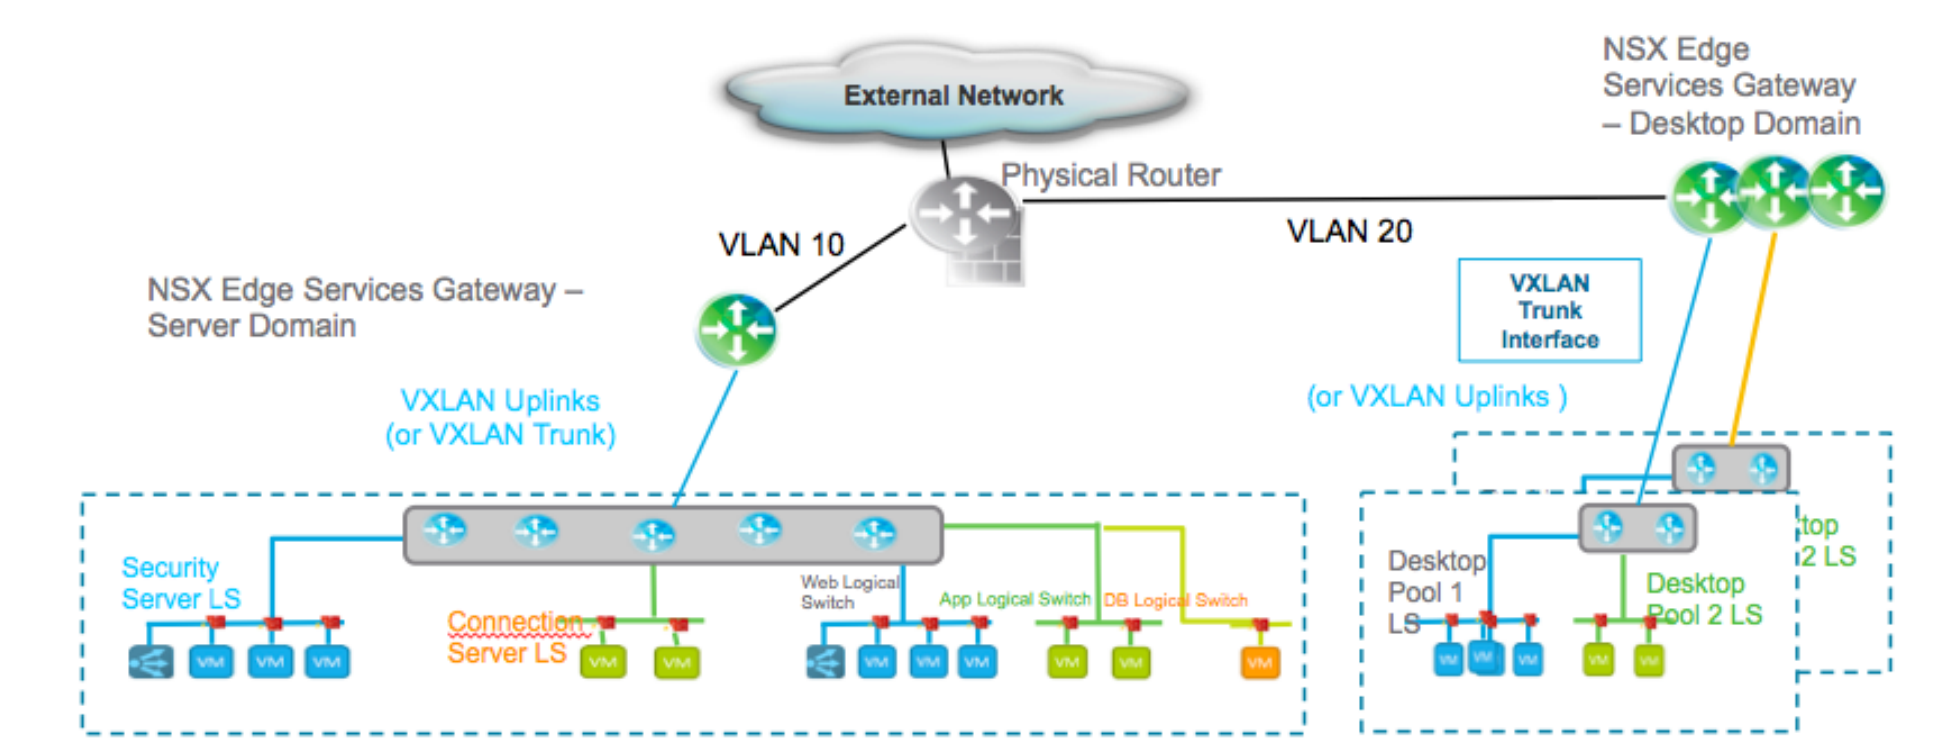 Vmware nsx for vsphere end user computing design guide for Horizon 7 architecture